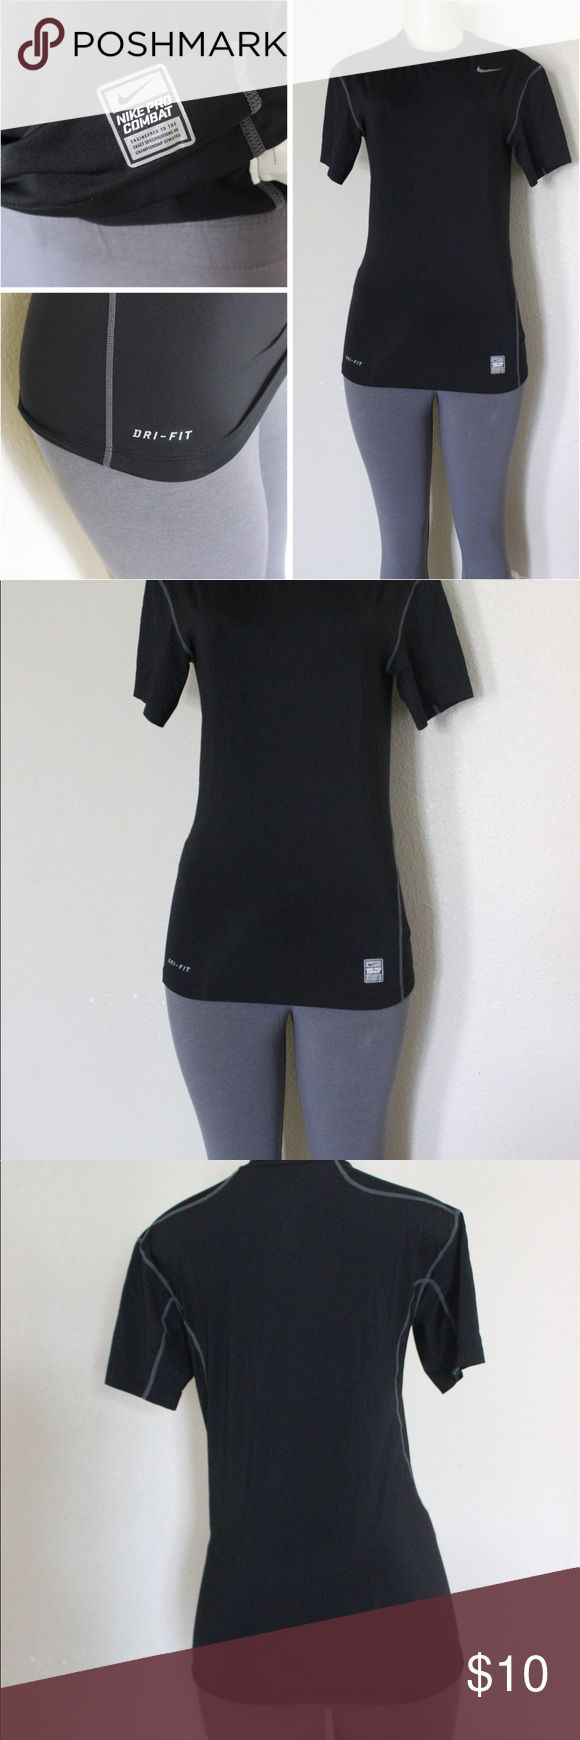 Nike pro Combat Dri Fit Shirt 🖤⭐️ Nike pro combat dri fit is size large has Nike  logo on top left of chest , has Nike combat logo on bottom left and dri fit logo on bottom right, also has Nike on the neck line from inside as see in pictures,it is a fitted shirt so it will be tight,  great conditions ⭐️ Nike Tops Tees - Short Sleeve